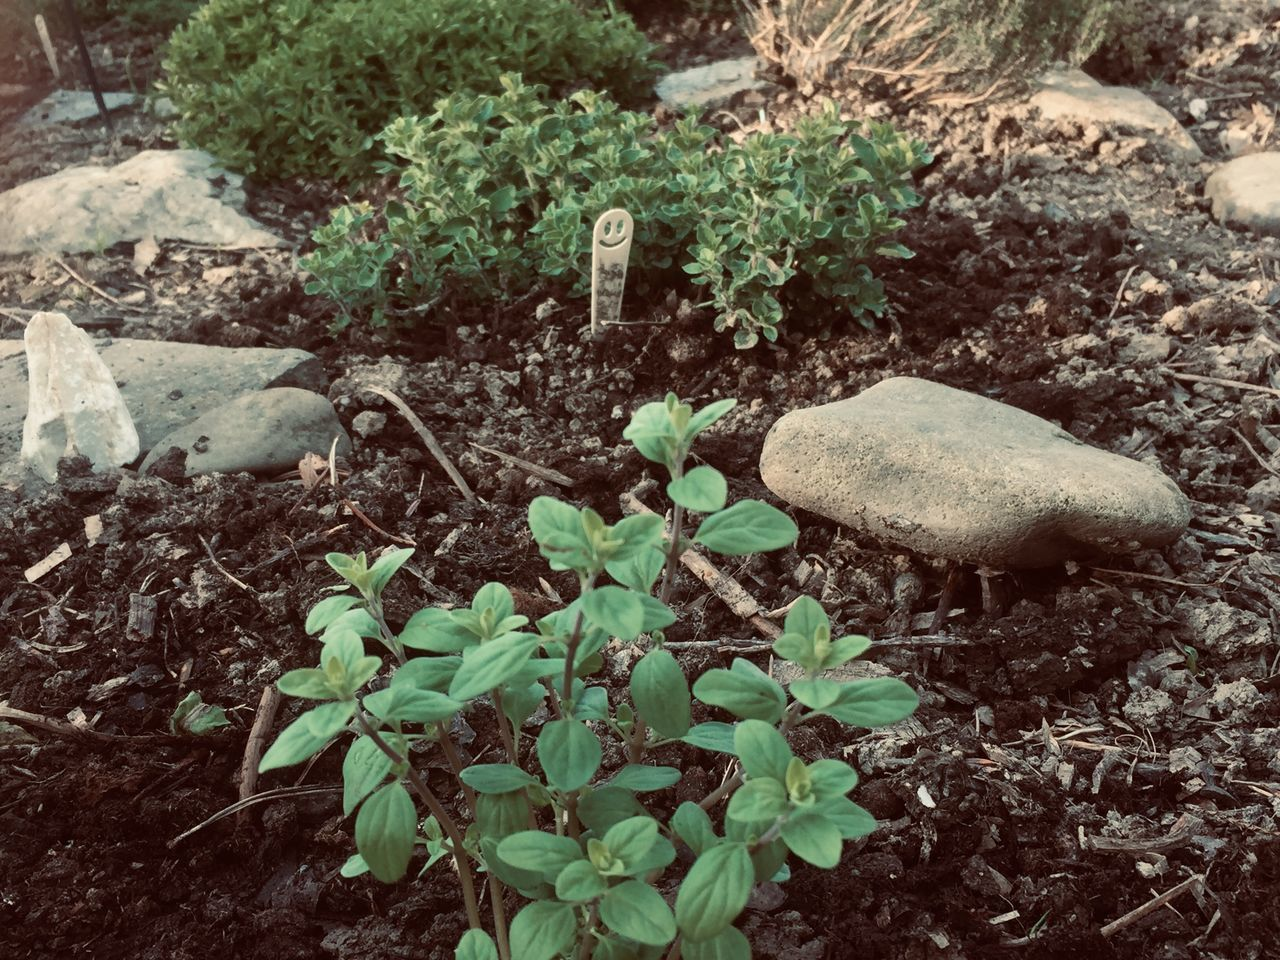 plant, growth, land, no people, nature, leaf, plant part, field, day, beauty in nature, high angle view, vegetable, outdoors, freshness, green color, close-up, food, solid, stone, mushroom